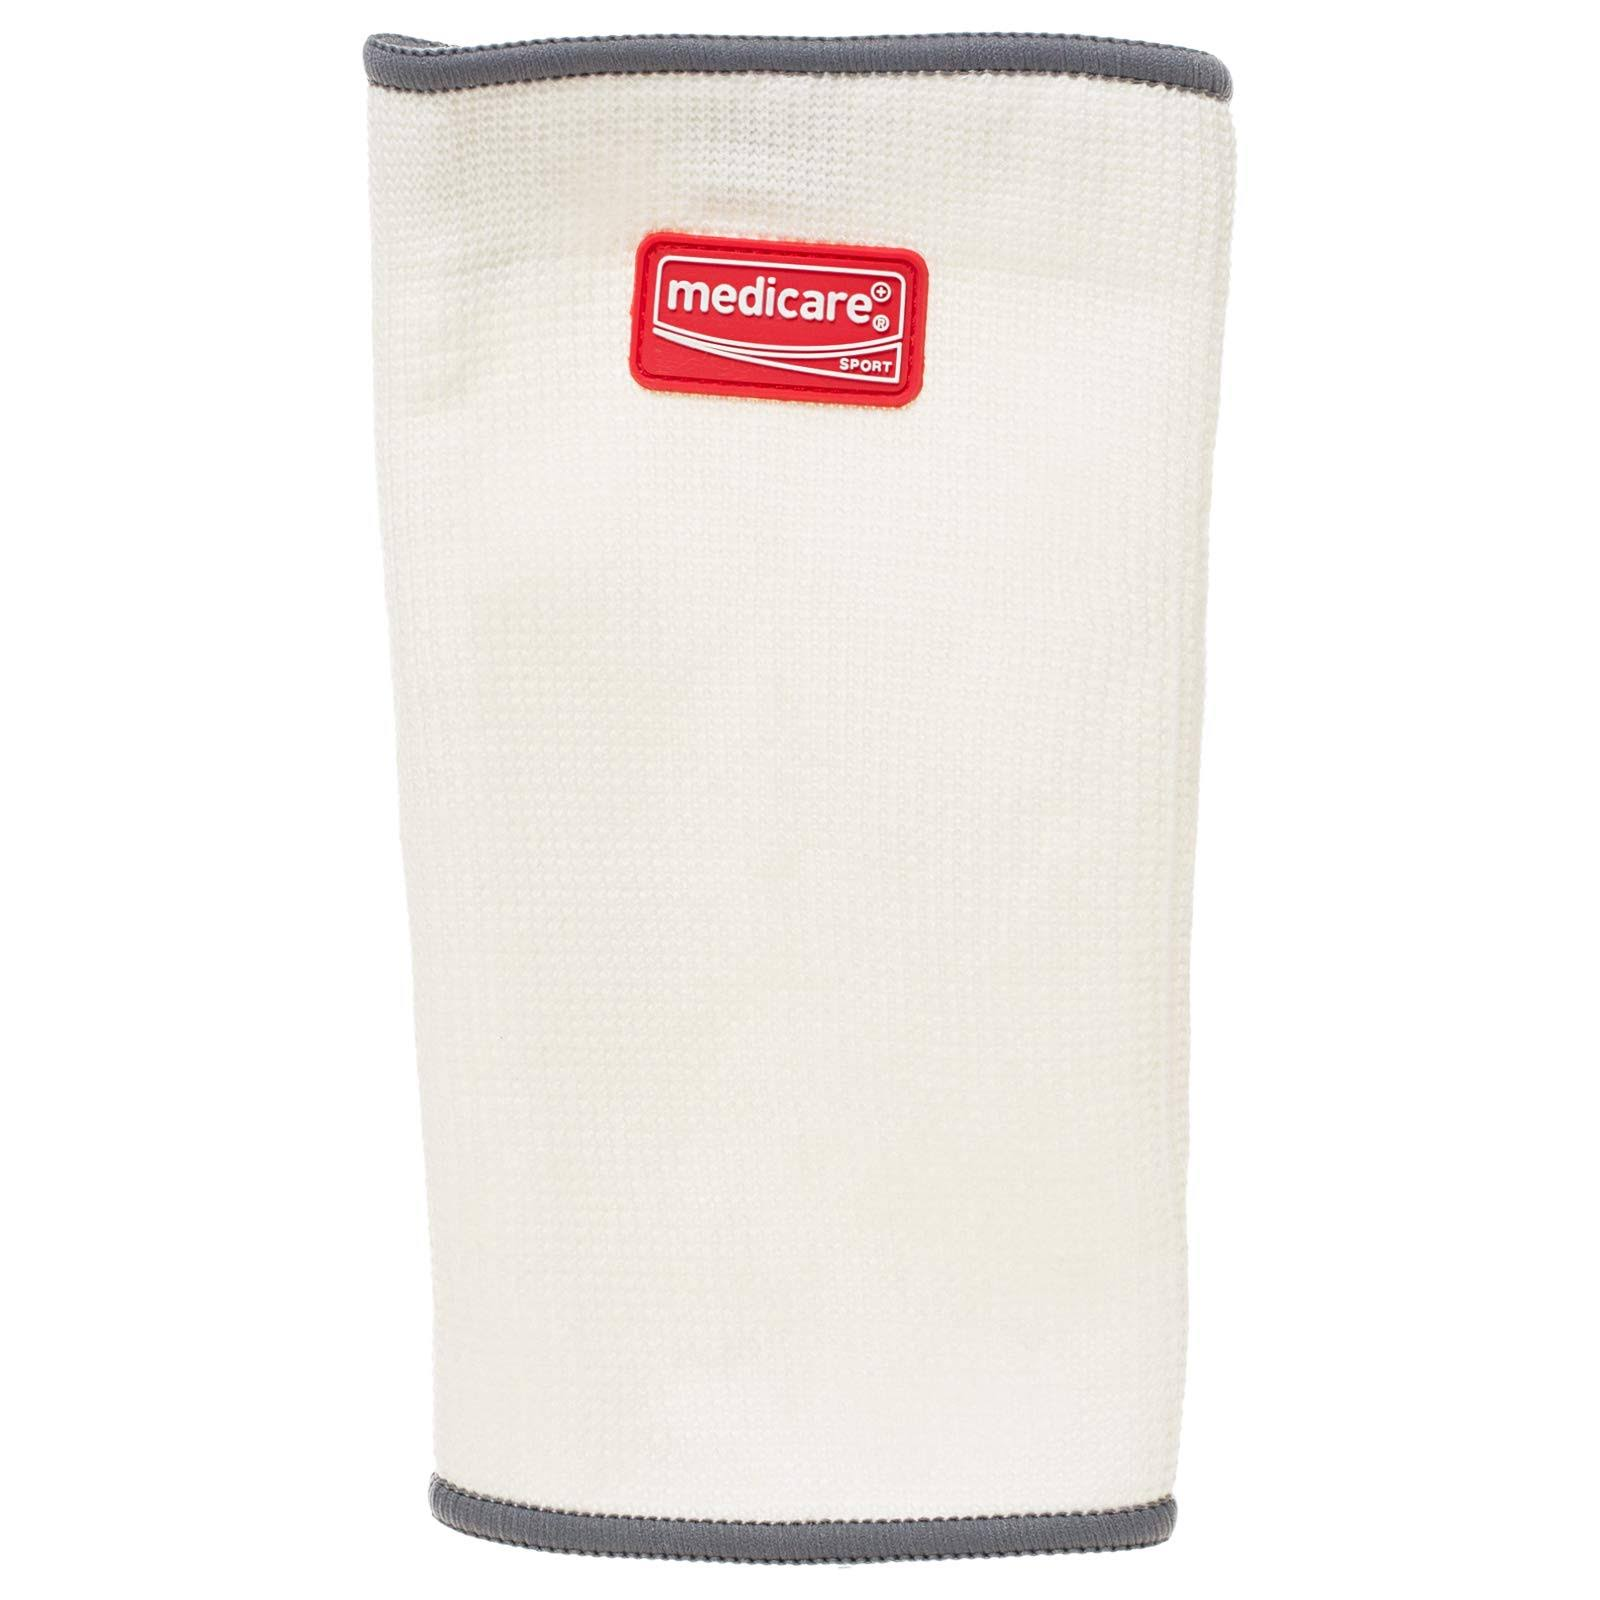 Medicare Sport Elbow Support Medium - CL